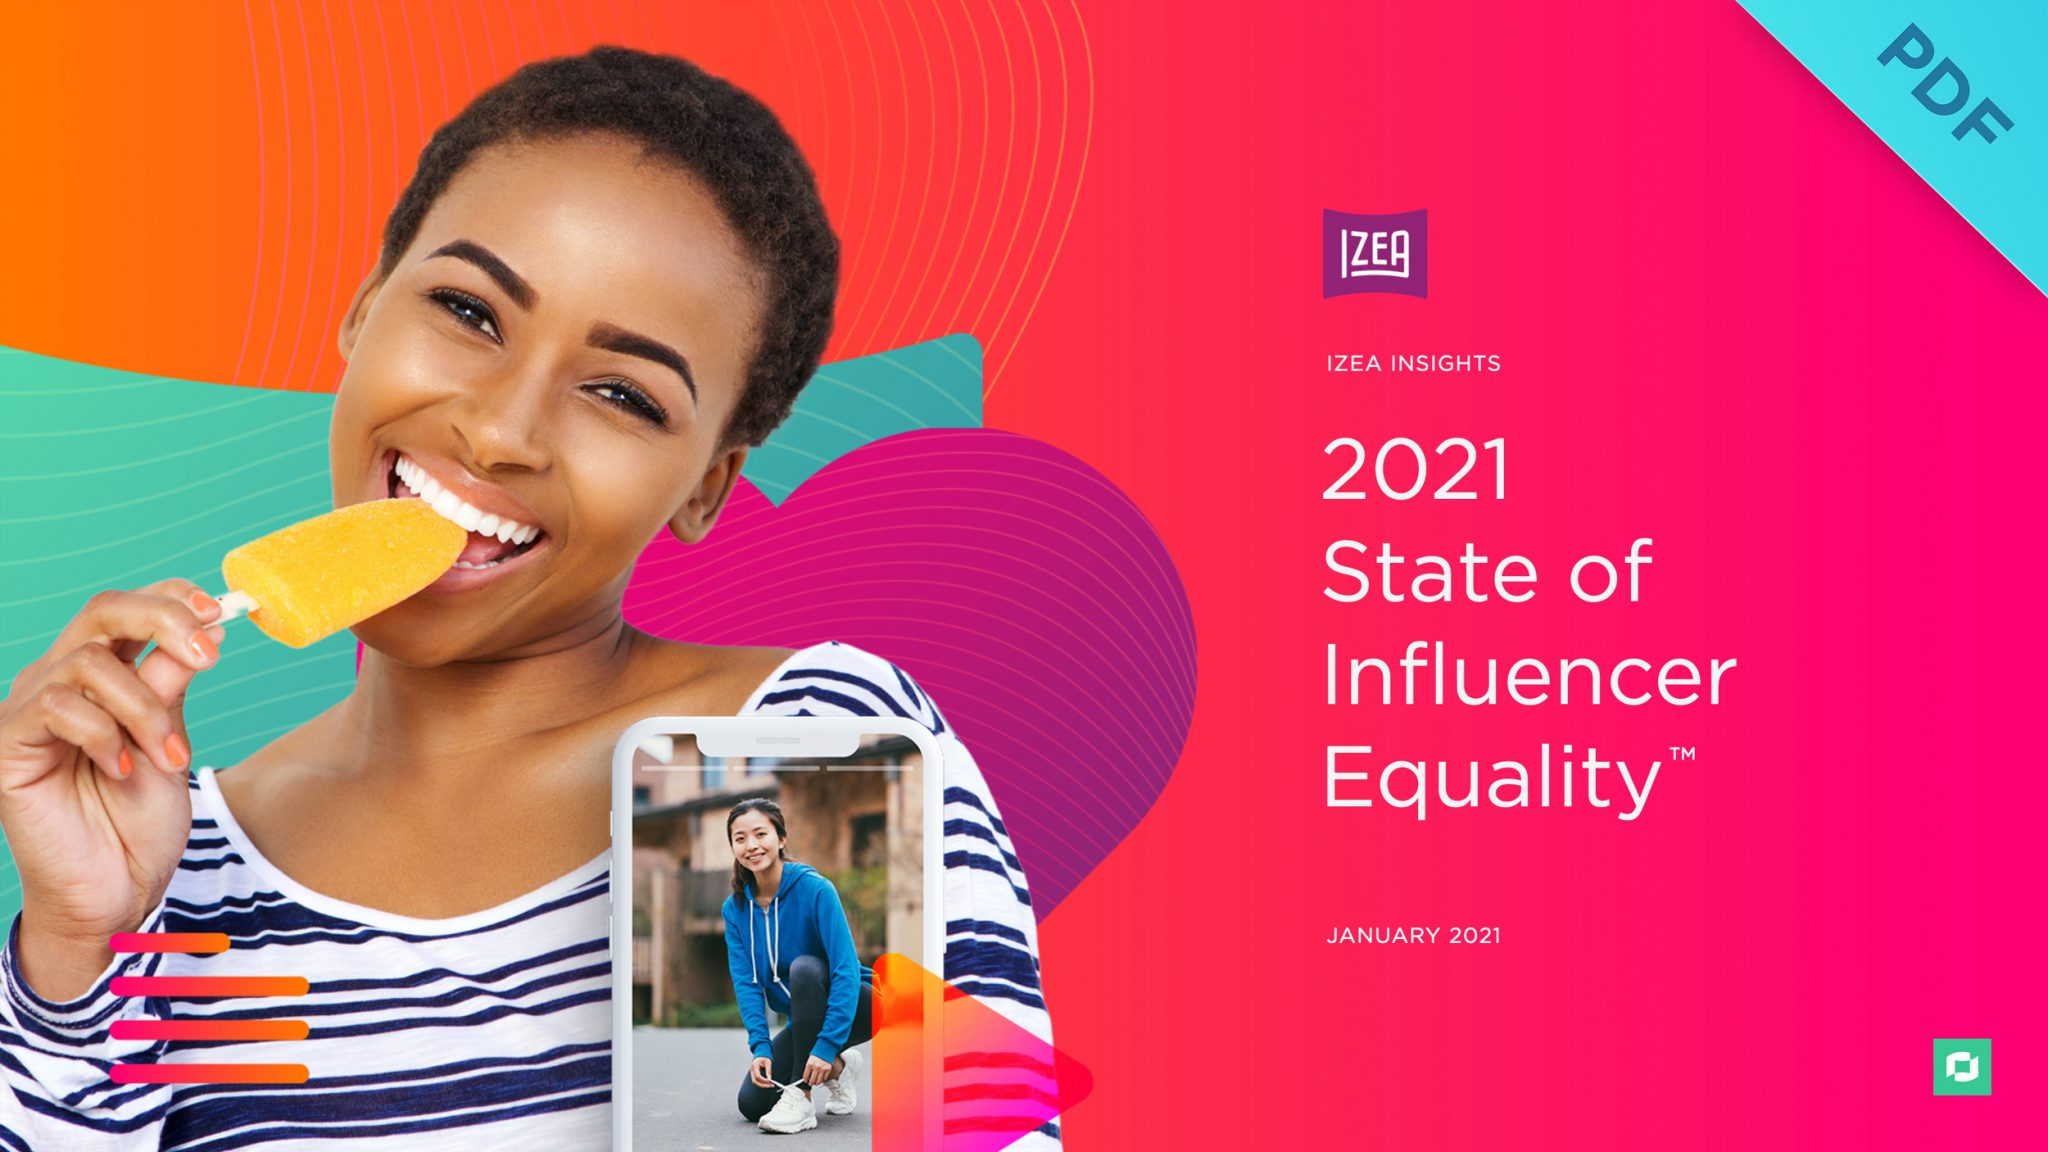 state of influencer equality manual guide pdf download